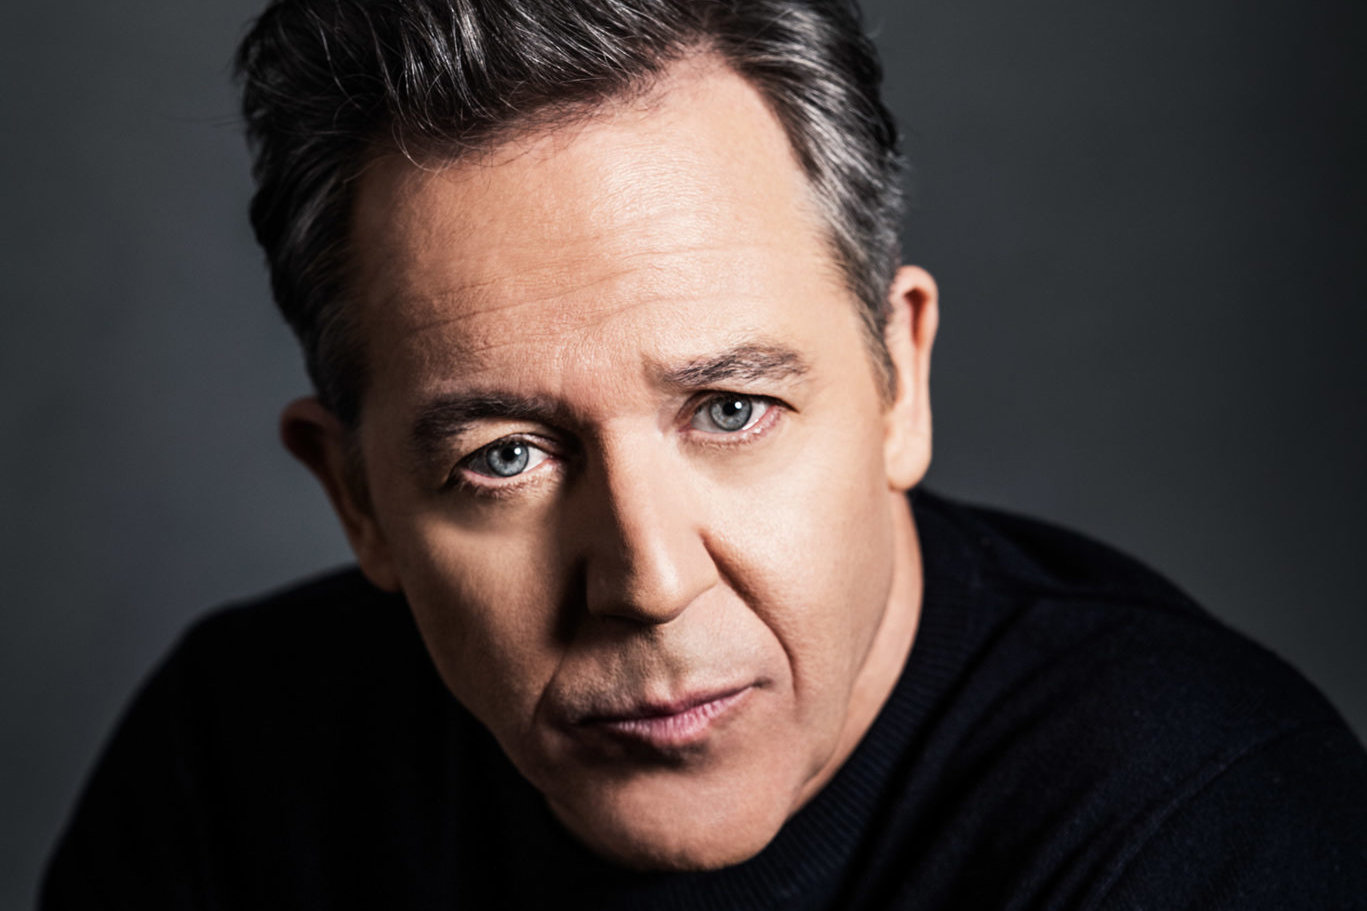 Greg Gutfeld Head Shot